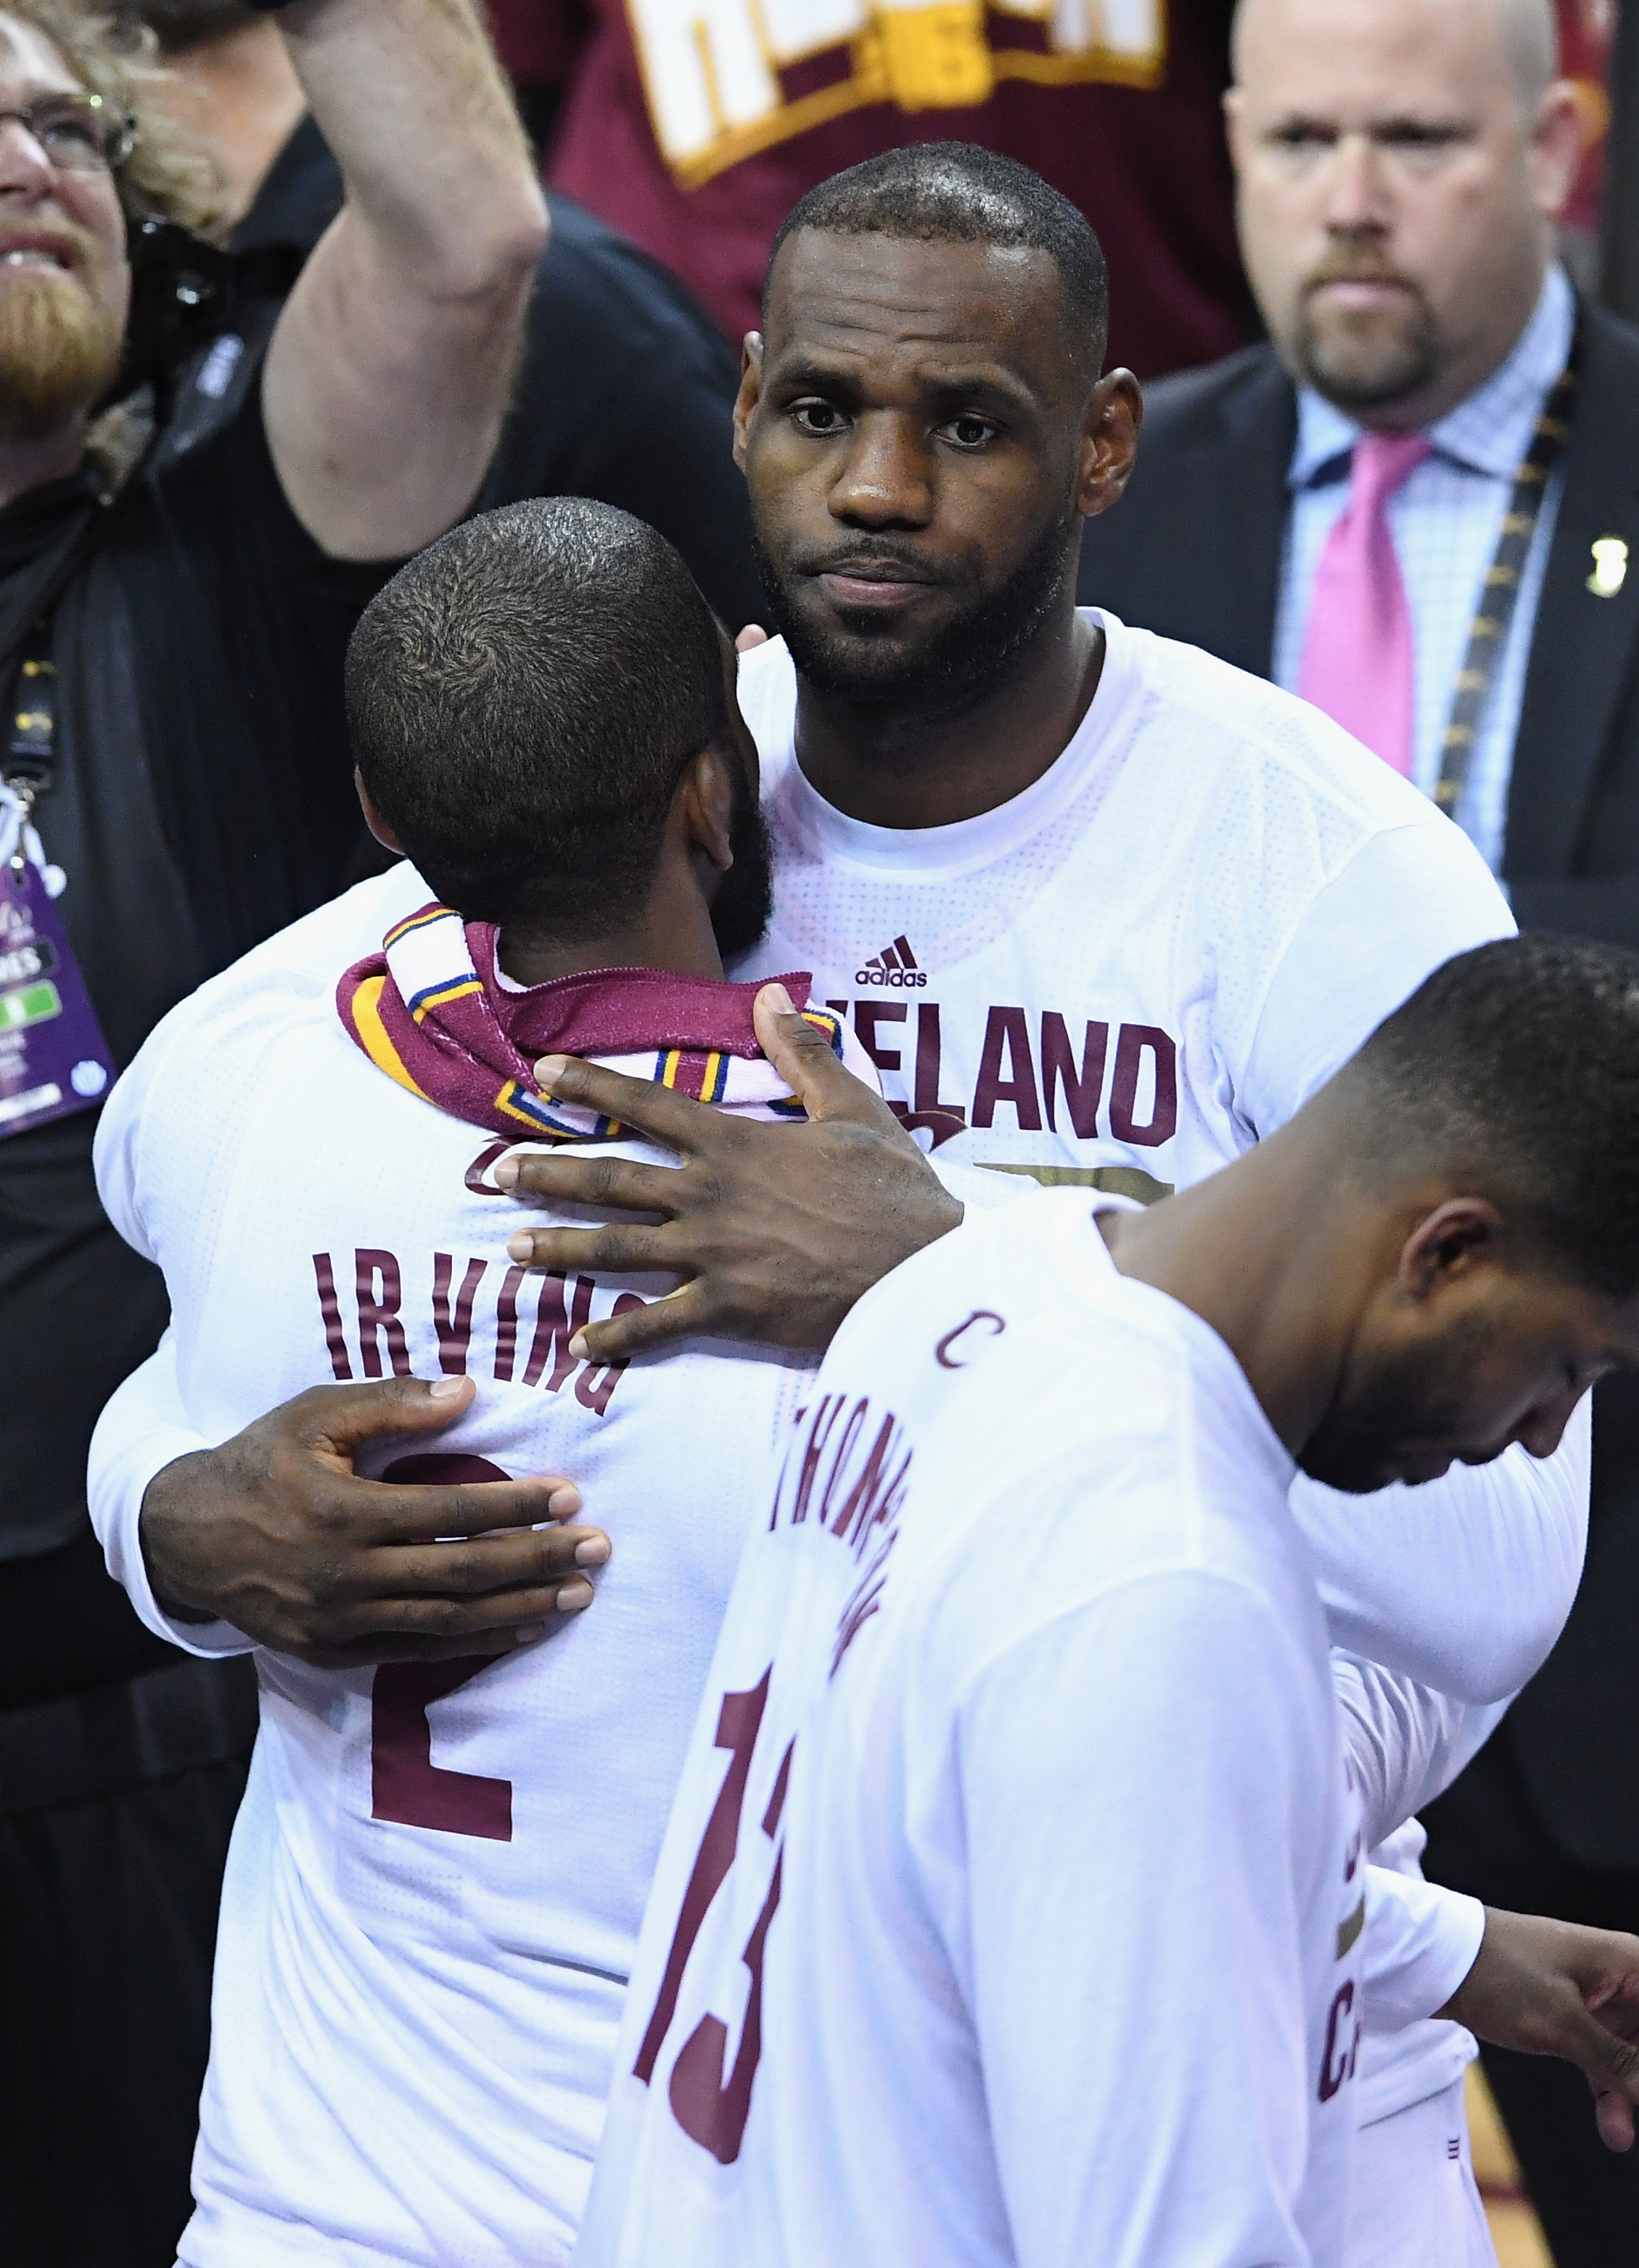 CLEVELAND, OH - JUNE 08:  Kyrie Irving #2 of the Cleveland Cavaliers celebrates with LeBron James #23 after defeating the Golden State Warriors 120-90 in Game 3 of the 2016 NBA Finals at Quicken Loans Arena on June 8, 2016 in Cleveland, Ohio. (Photo by Ja